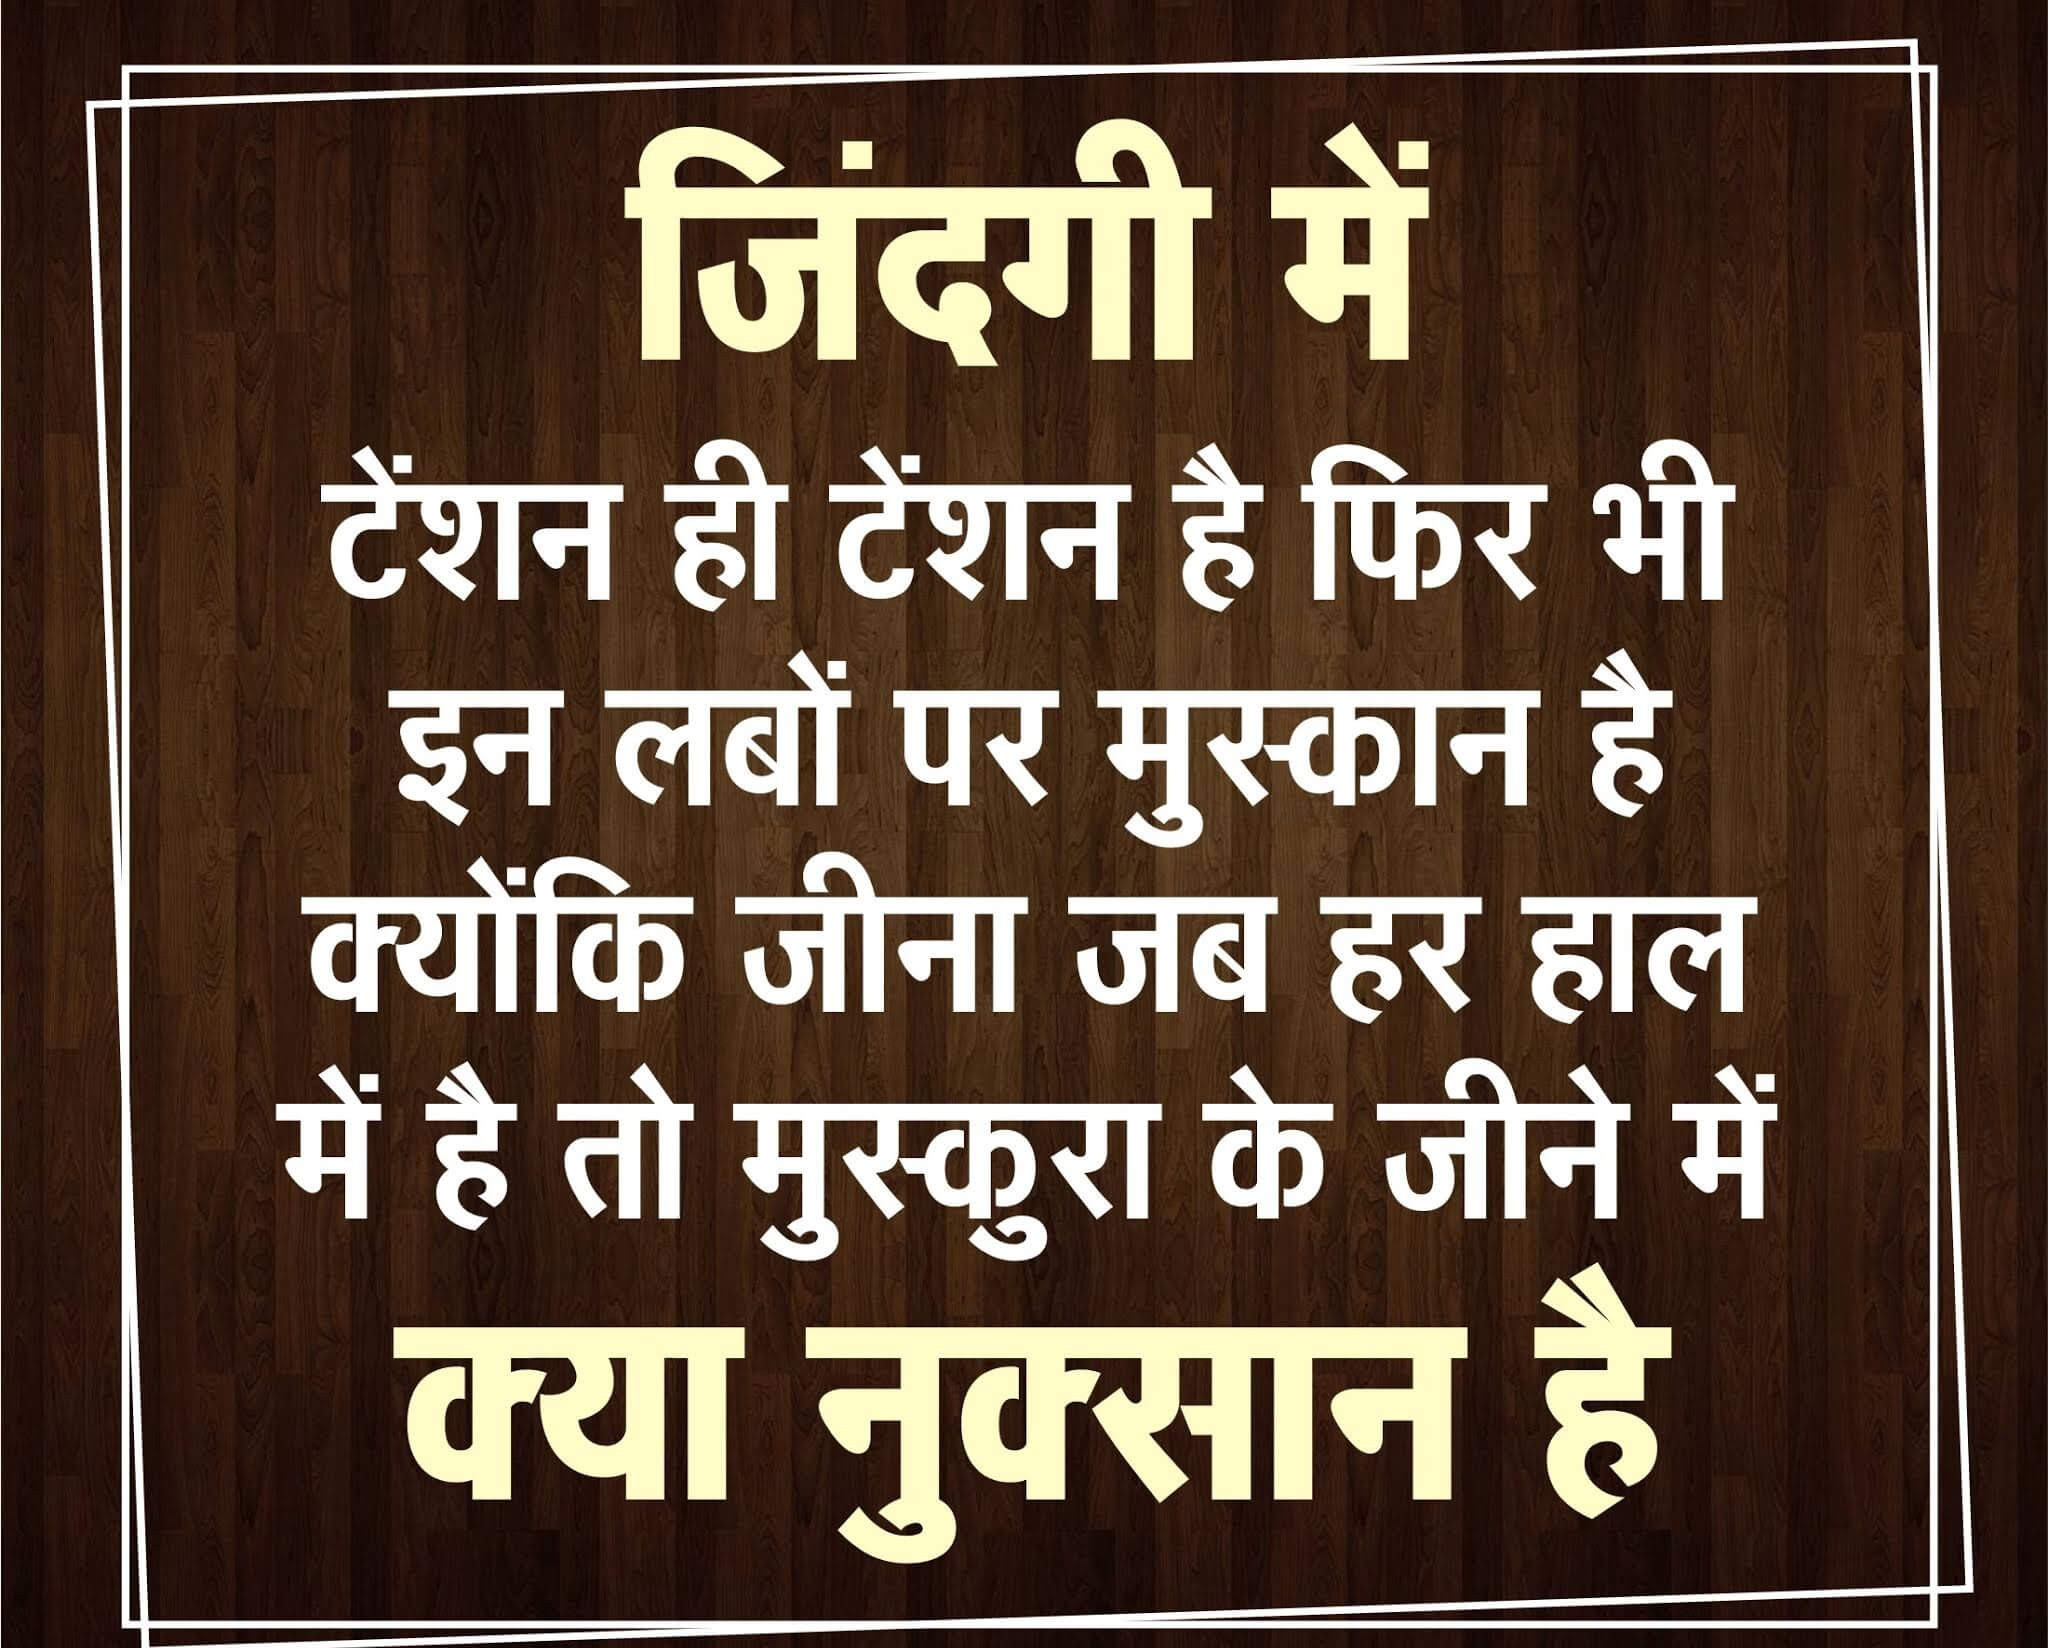 Hindi Motivational Quotes Life